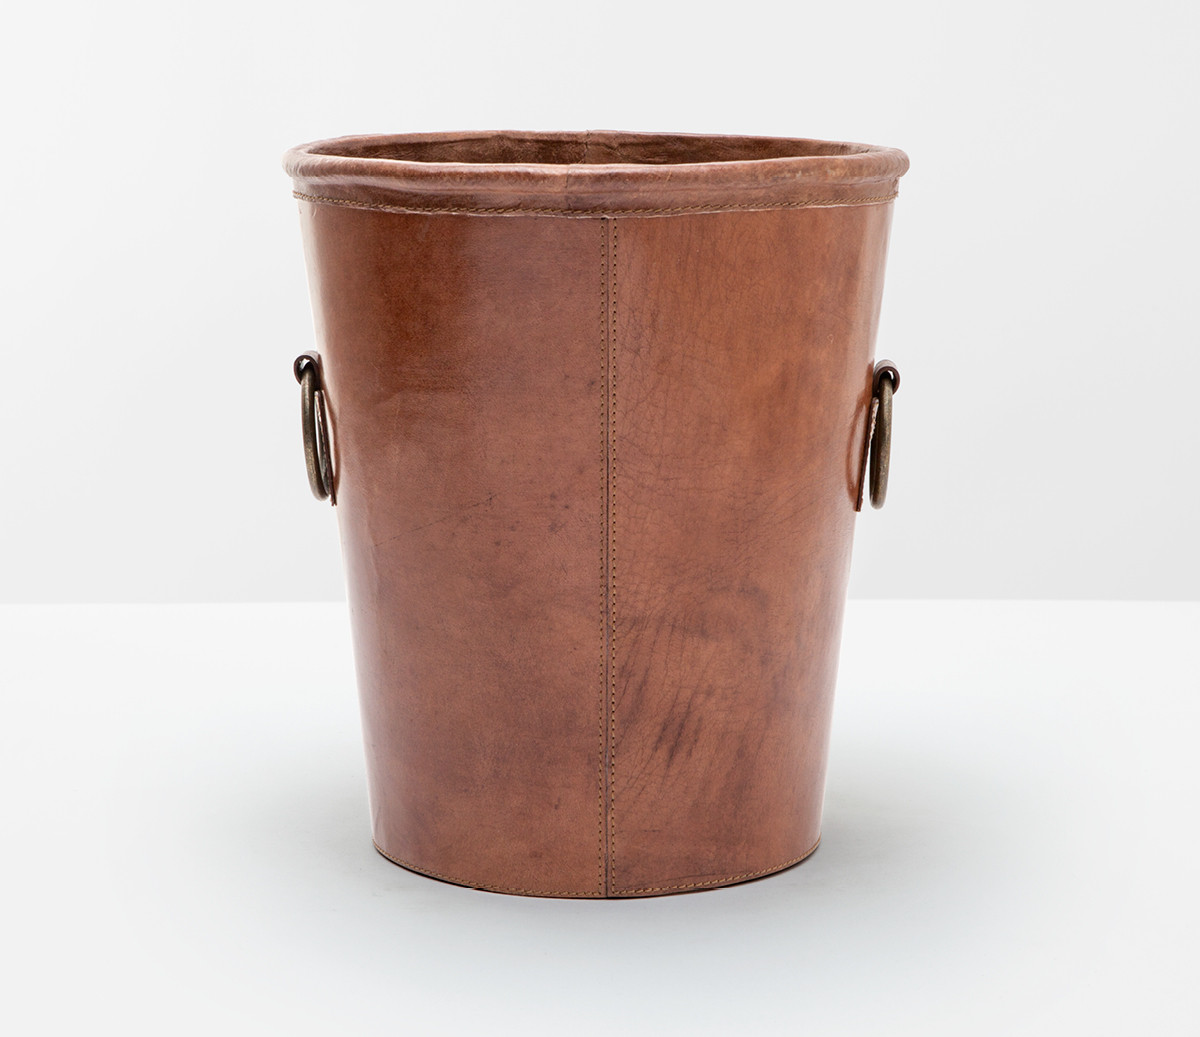 Decorative Metal Waste Baskets Ogden Wastebasket Tobacco Leather Bathroom Accessories At